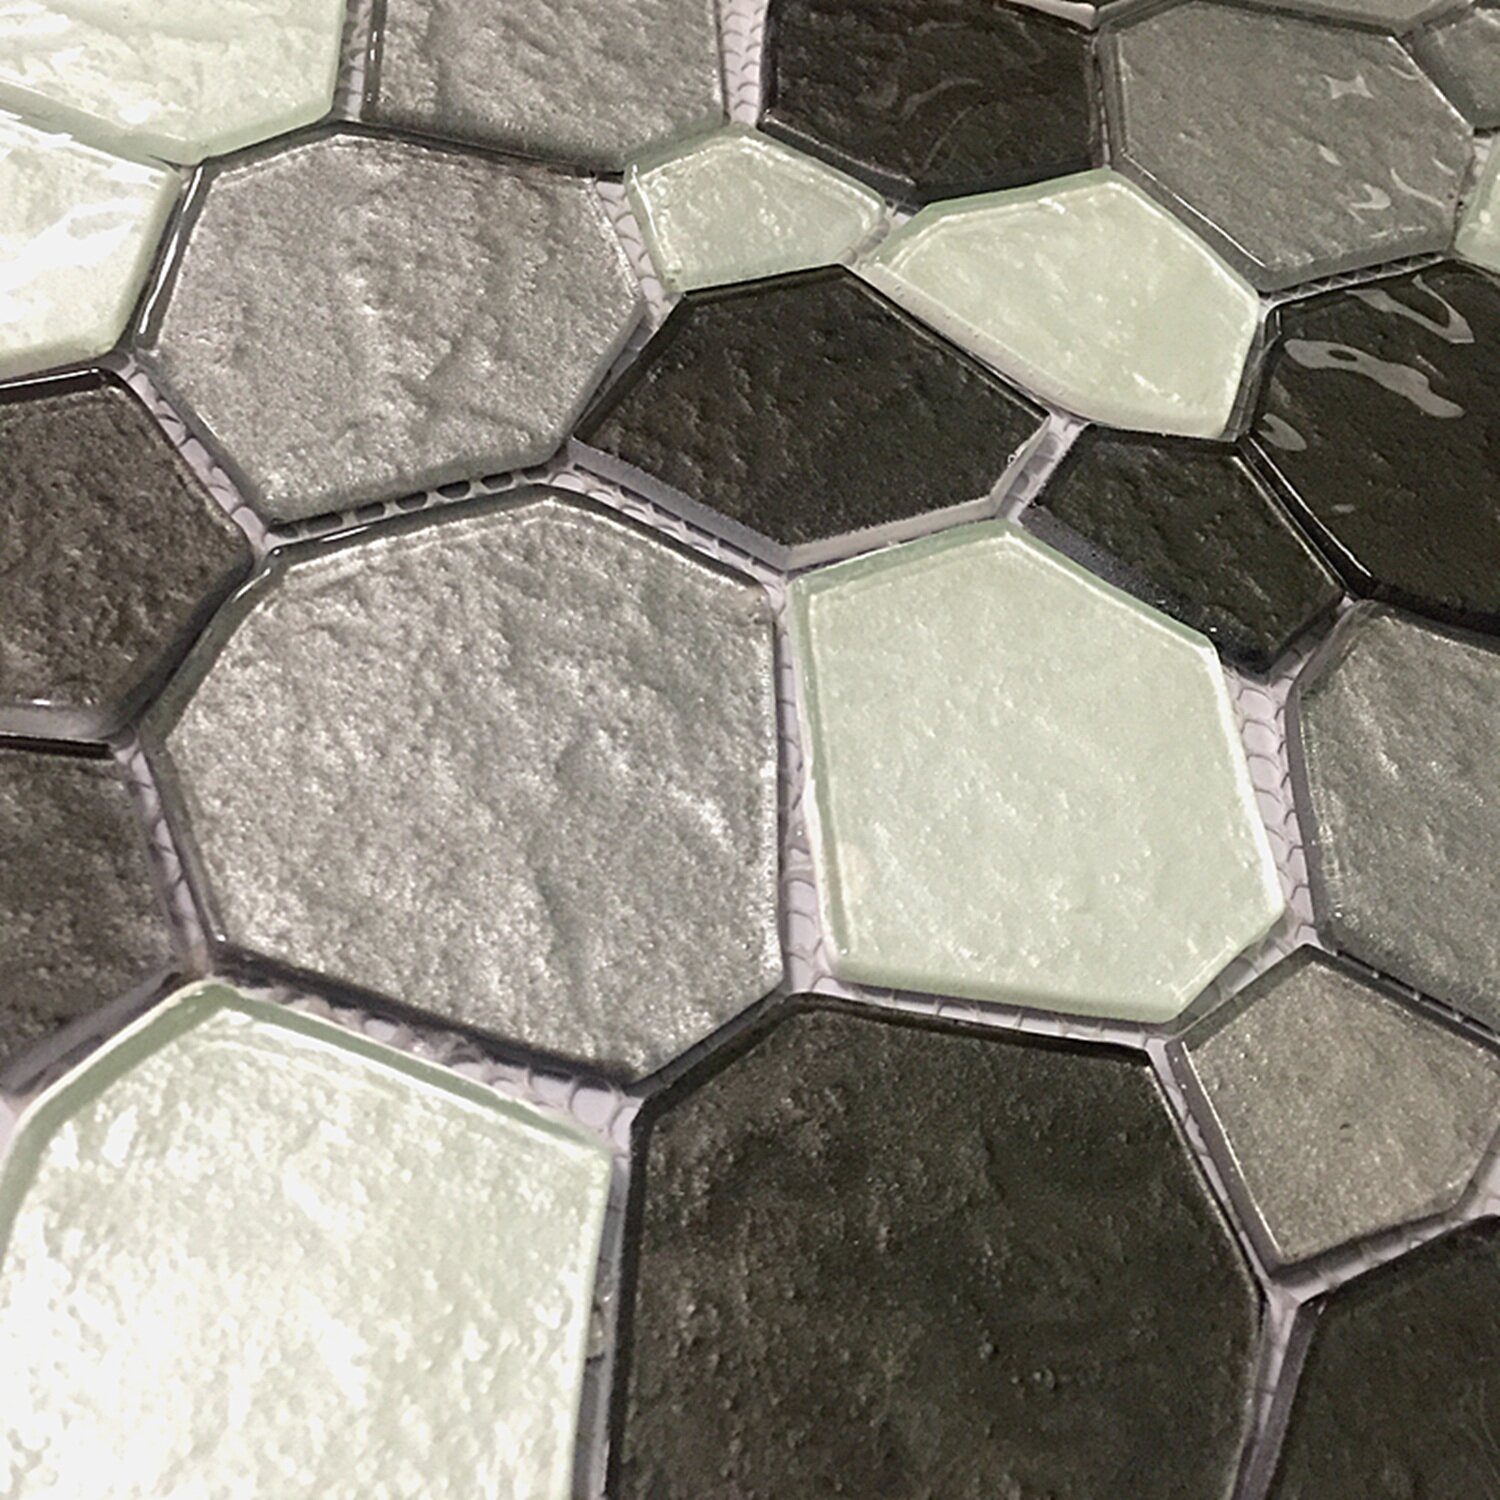 instant mosaic 12 x 12 glass peel and stick mosaic tile in white and gray reviews wayfair. Black Bedroom Furniture Sets. Home Design Ideas